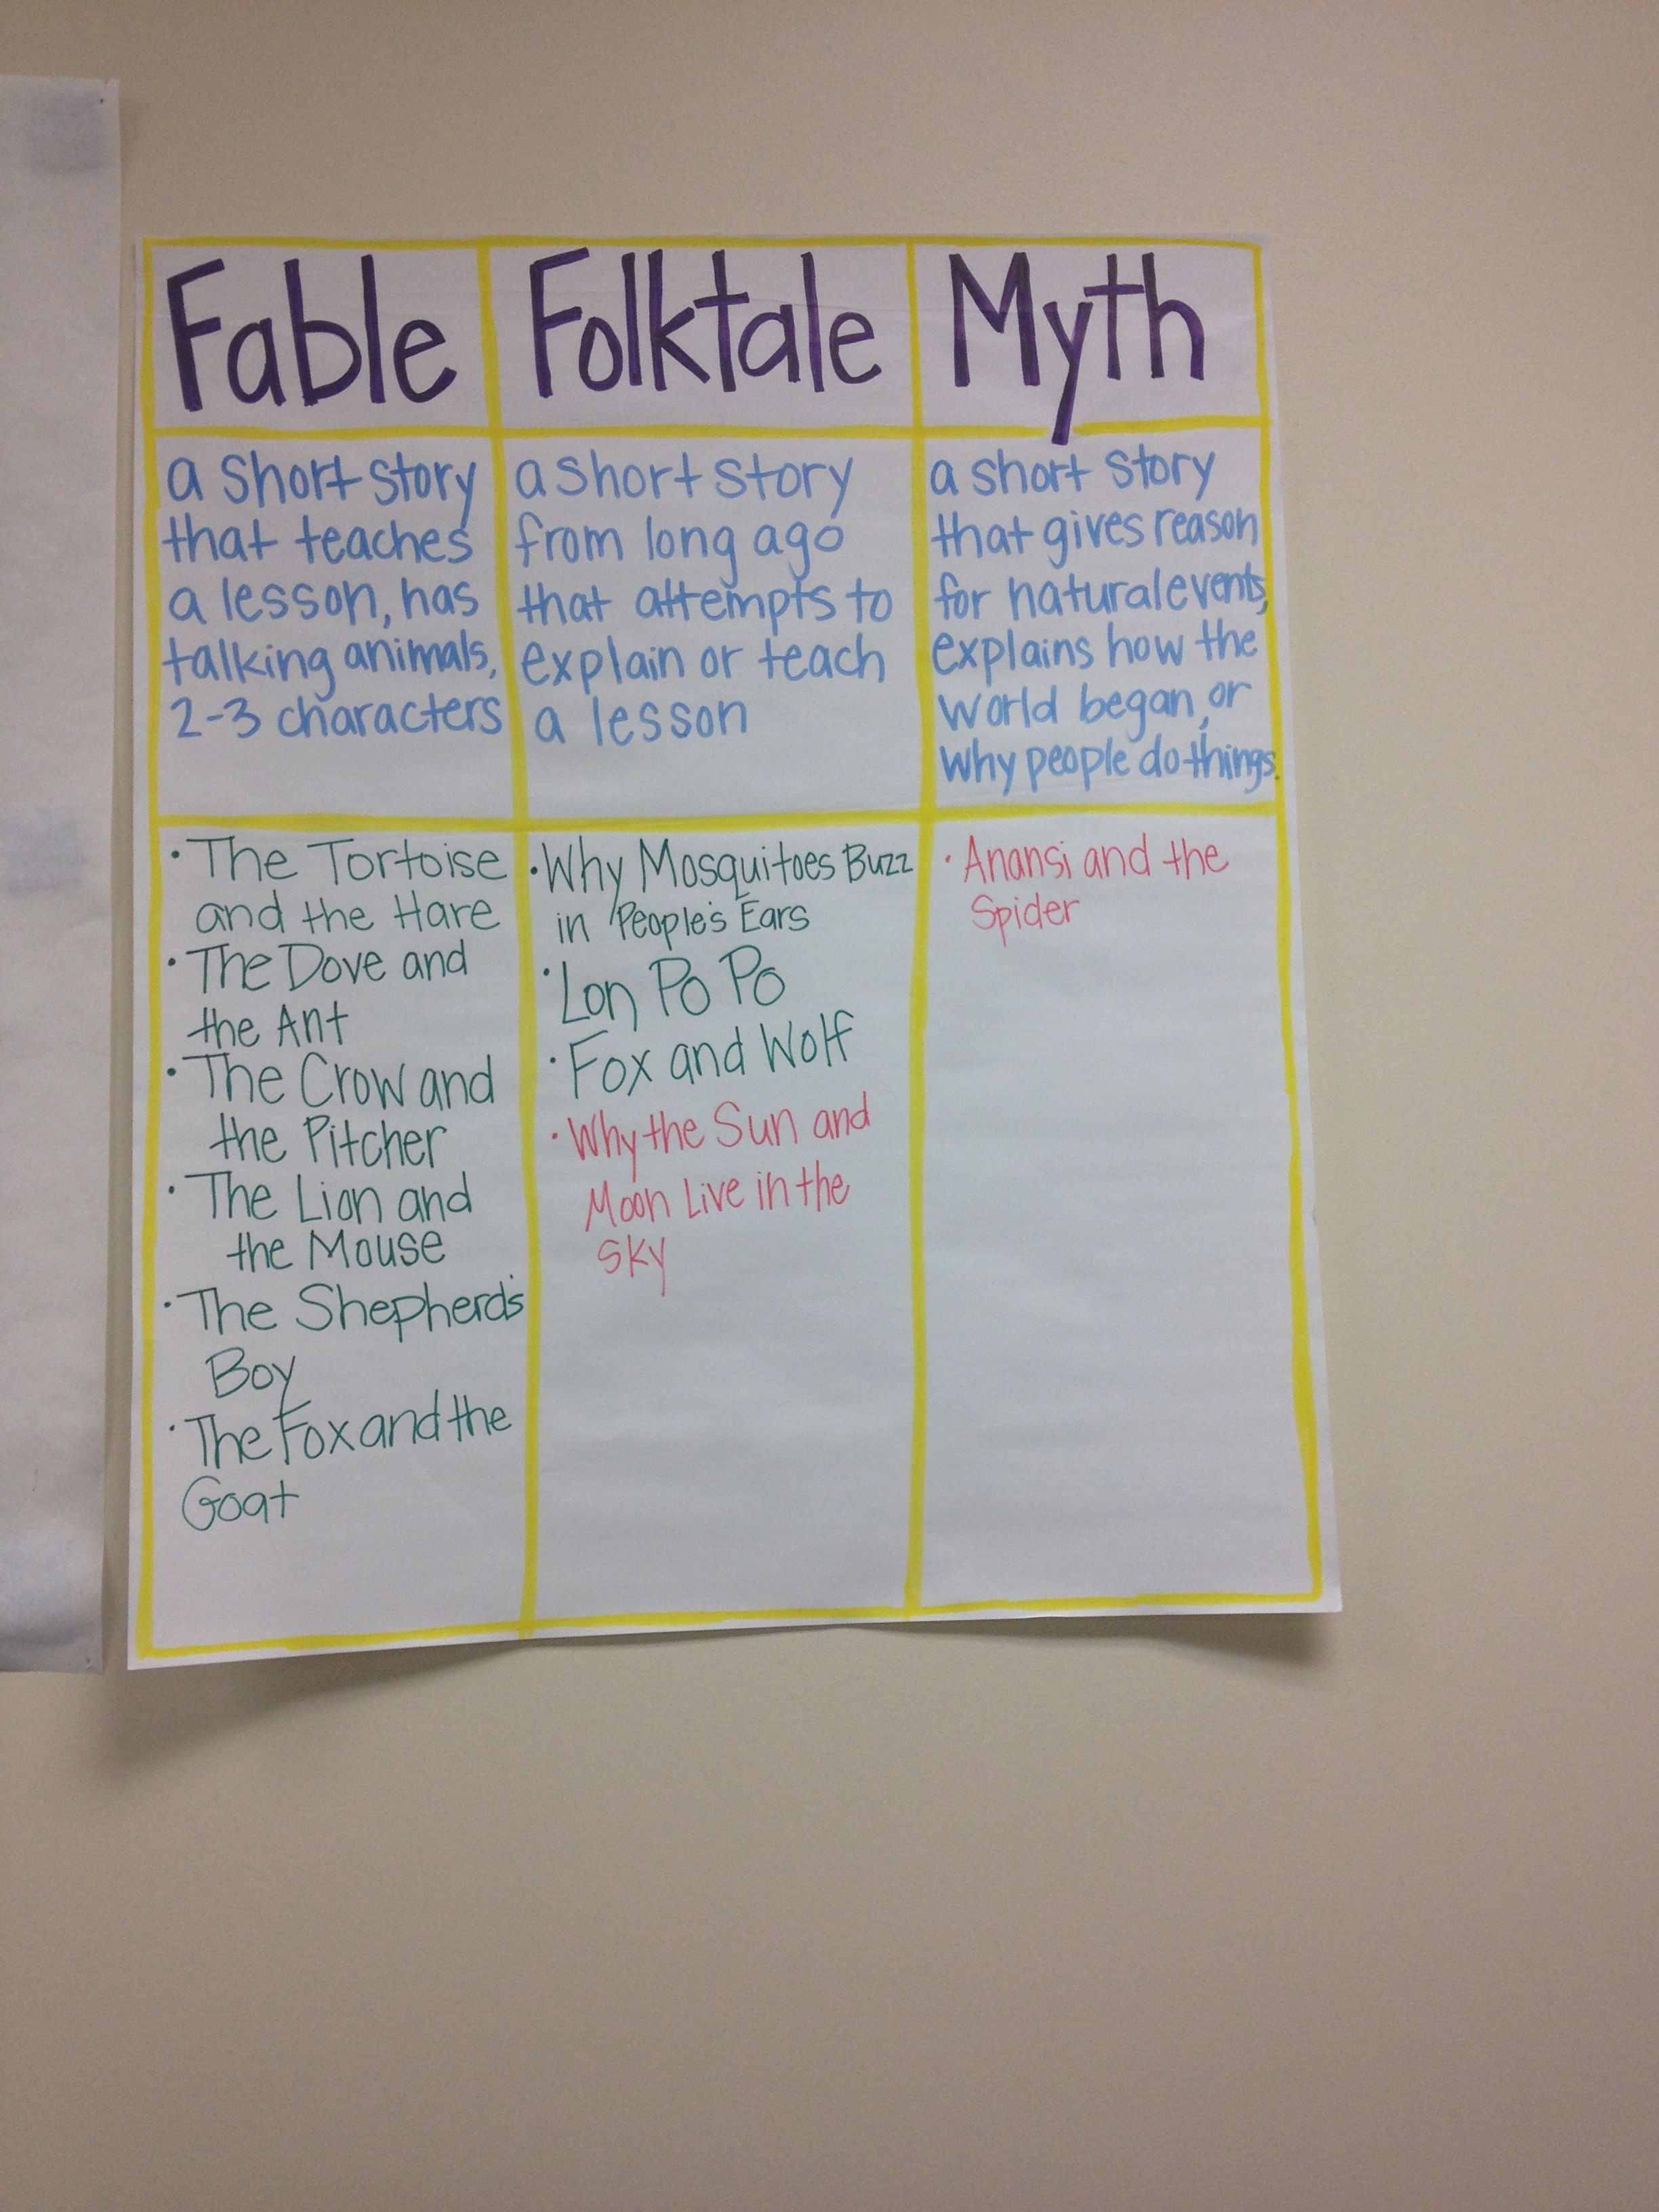 Fable Folktale Myth Anchor Chart Description Of Each With Examples That The Class Reads